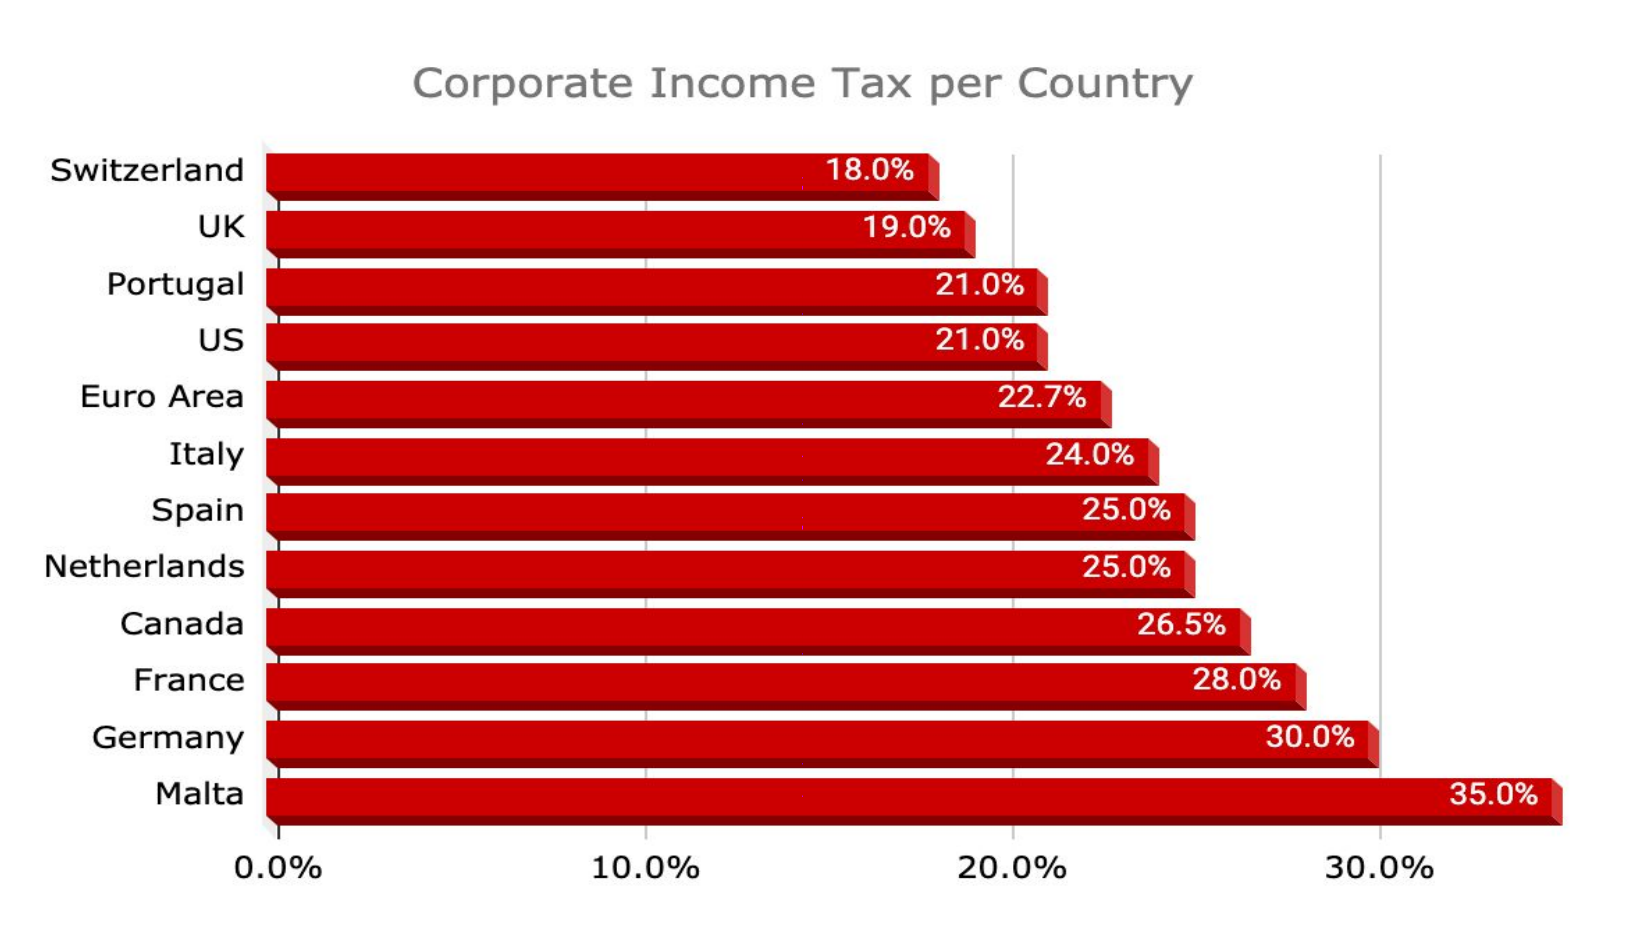 Corporate Income Tax in Portugal compared to other countries